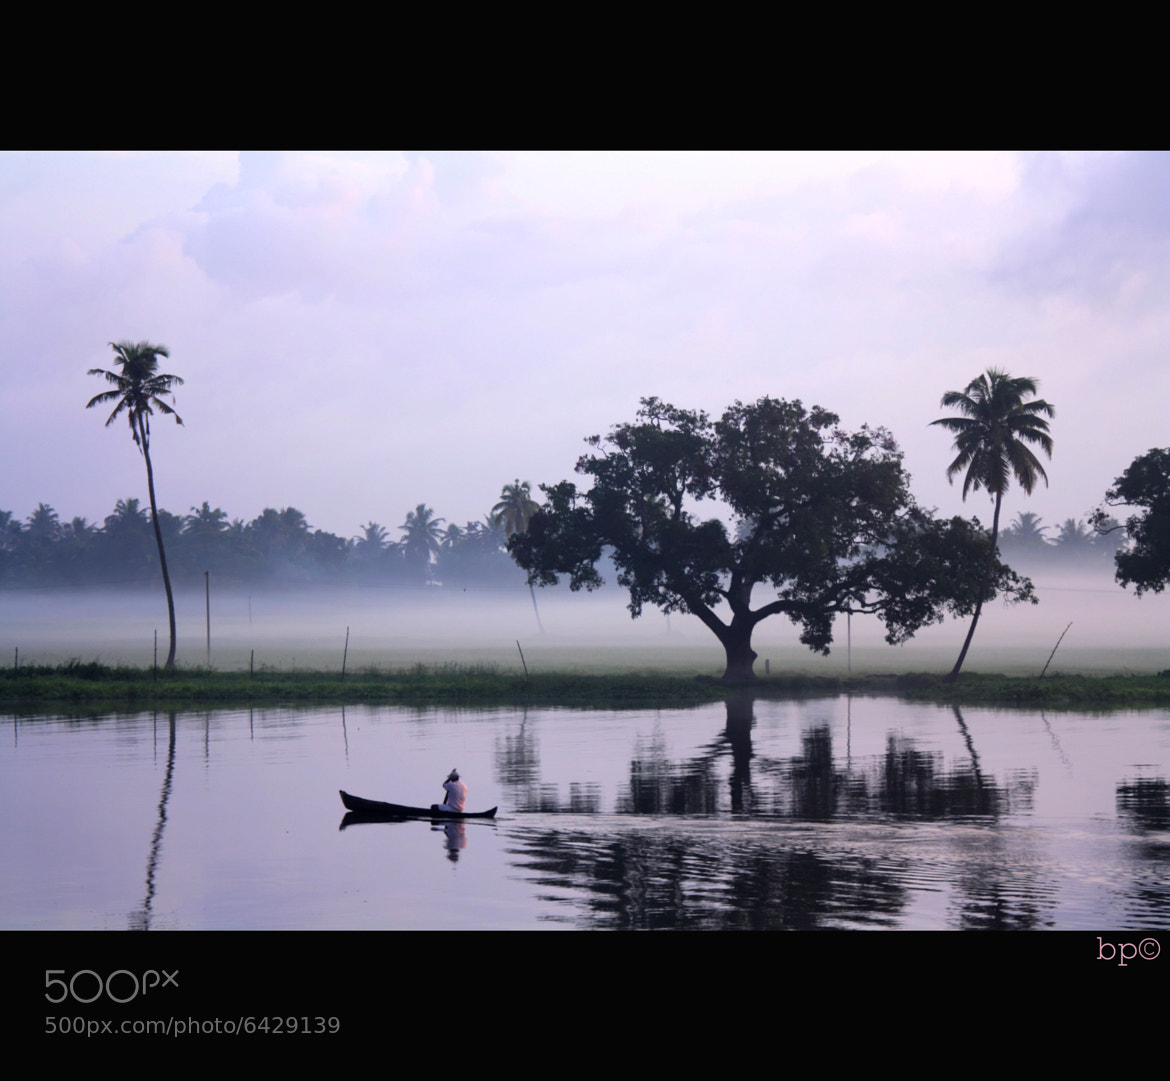 Photograph Solitude by Bipin Nambiar on 500px